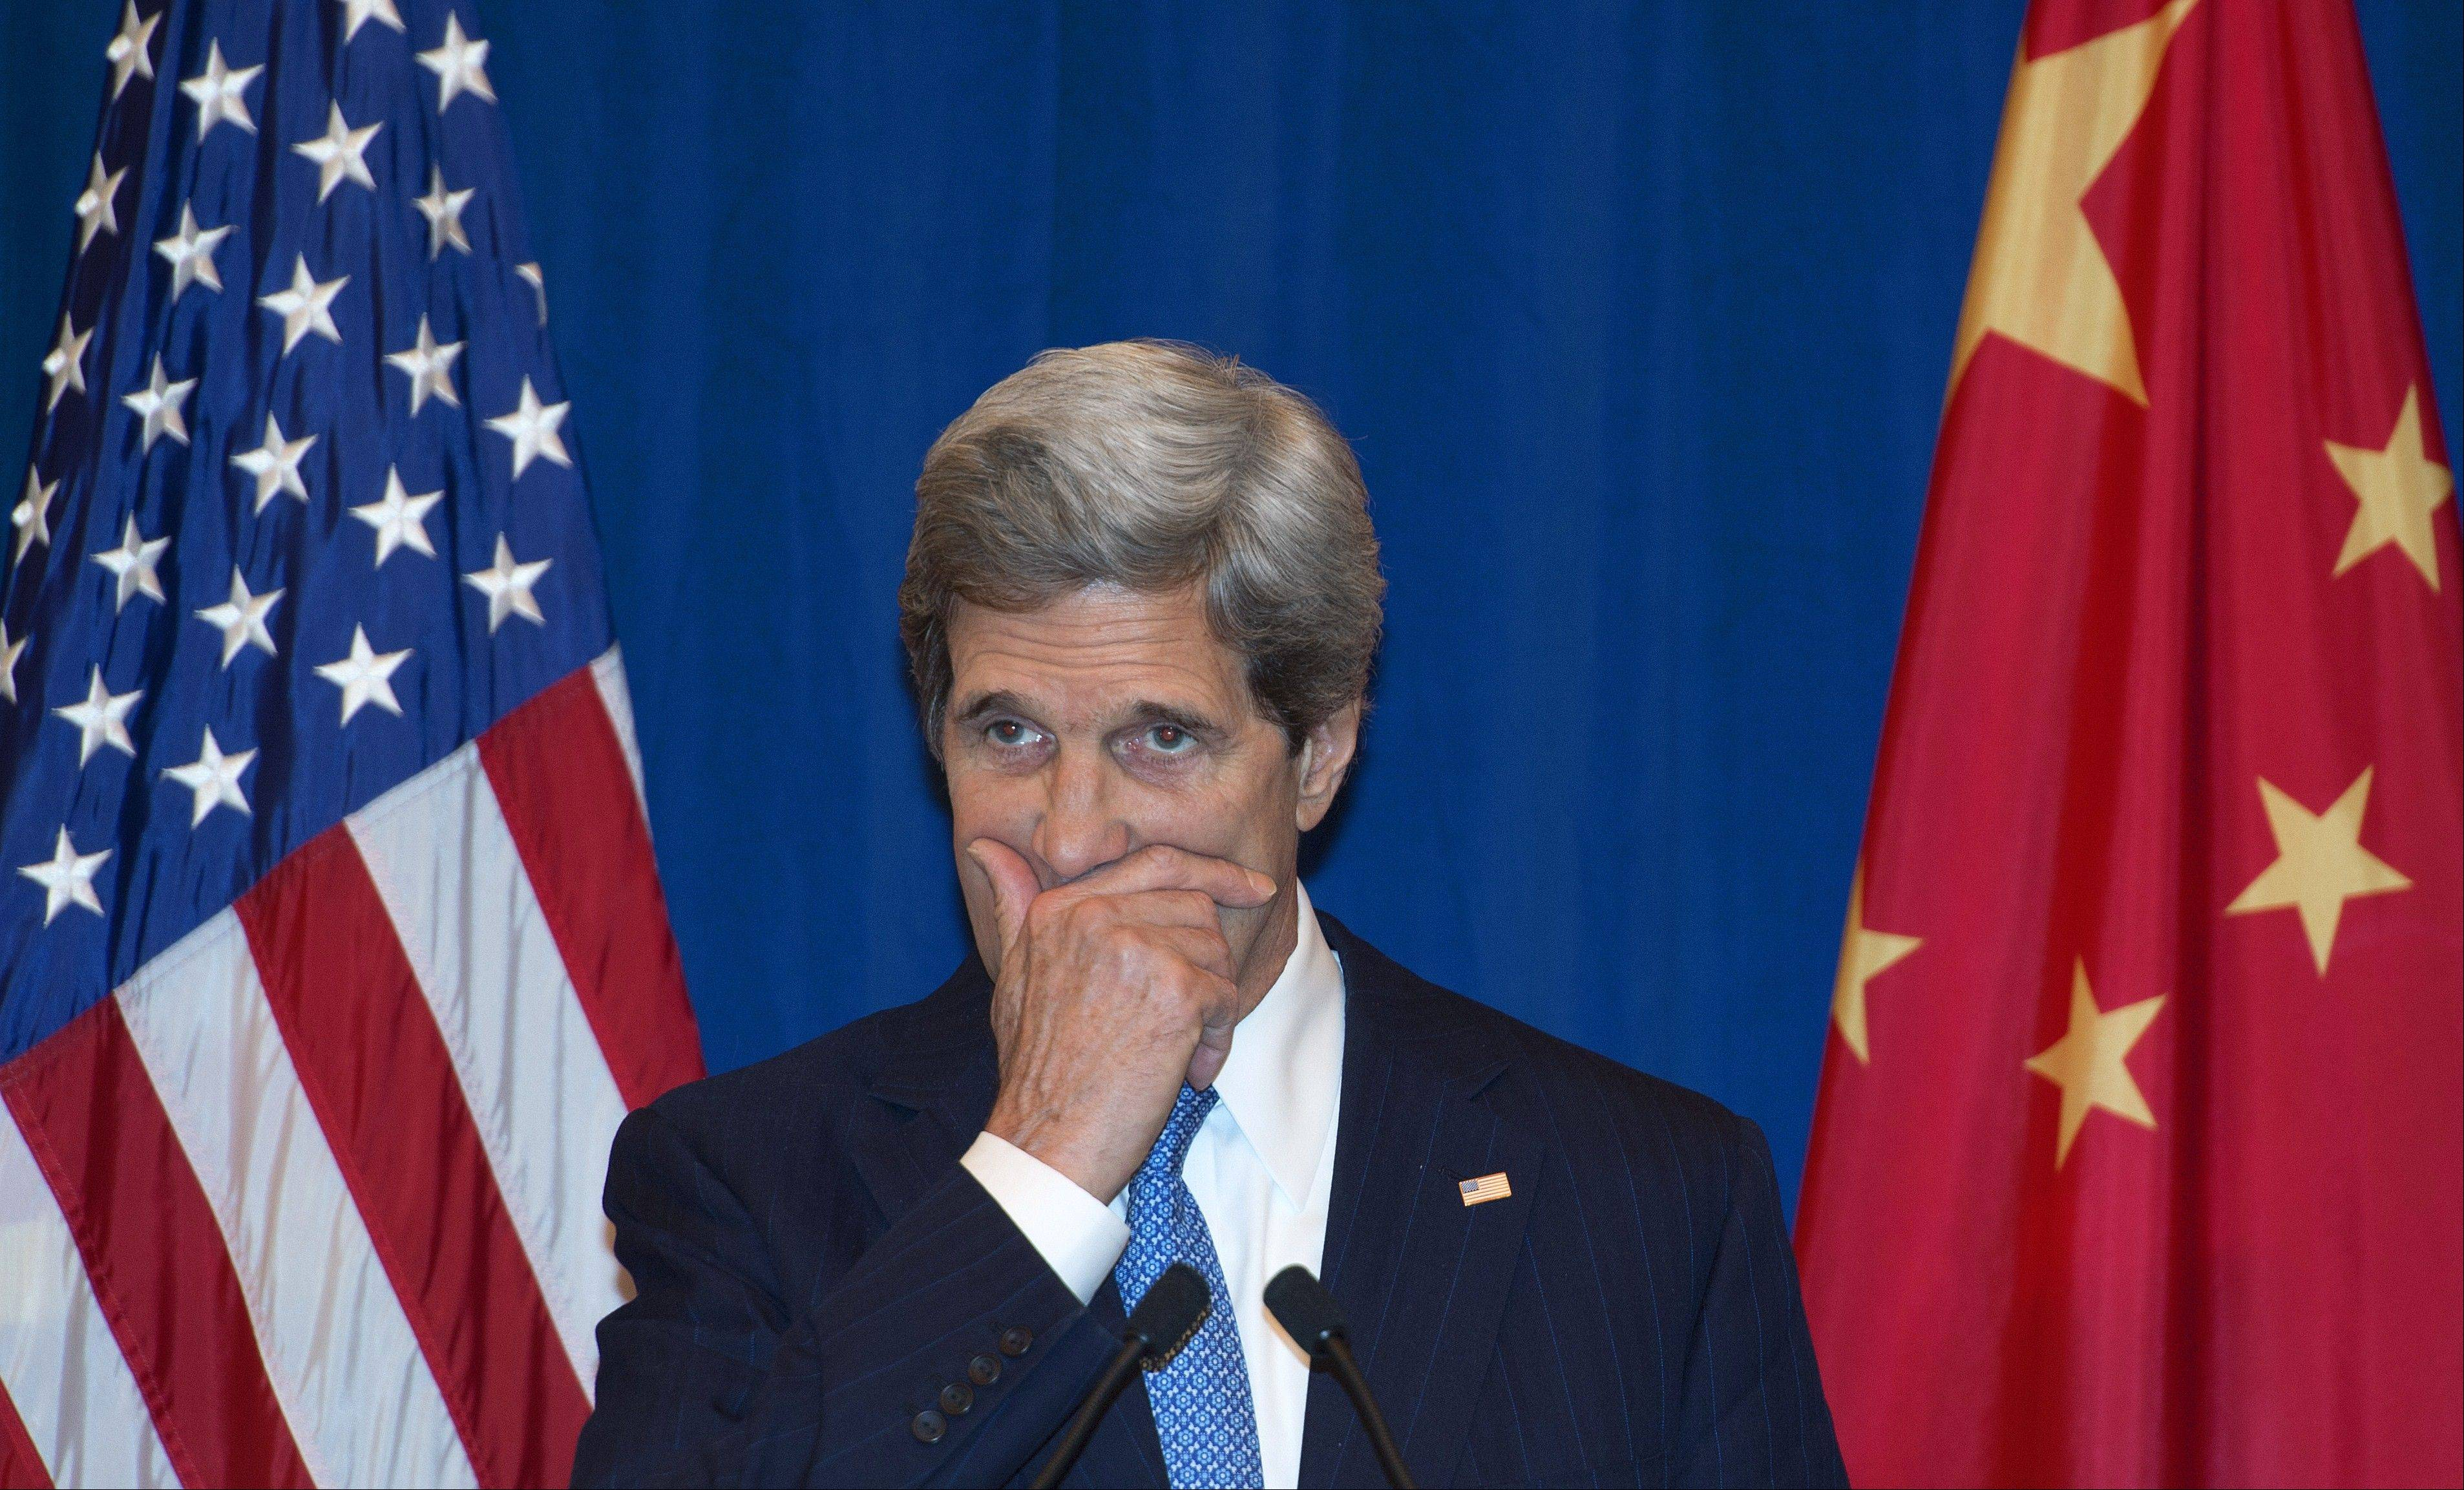 Secretary of State John Kerry conducts a press conference Saturday answering questions from U.S. and Chinese media, in Beijing, China.